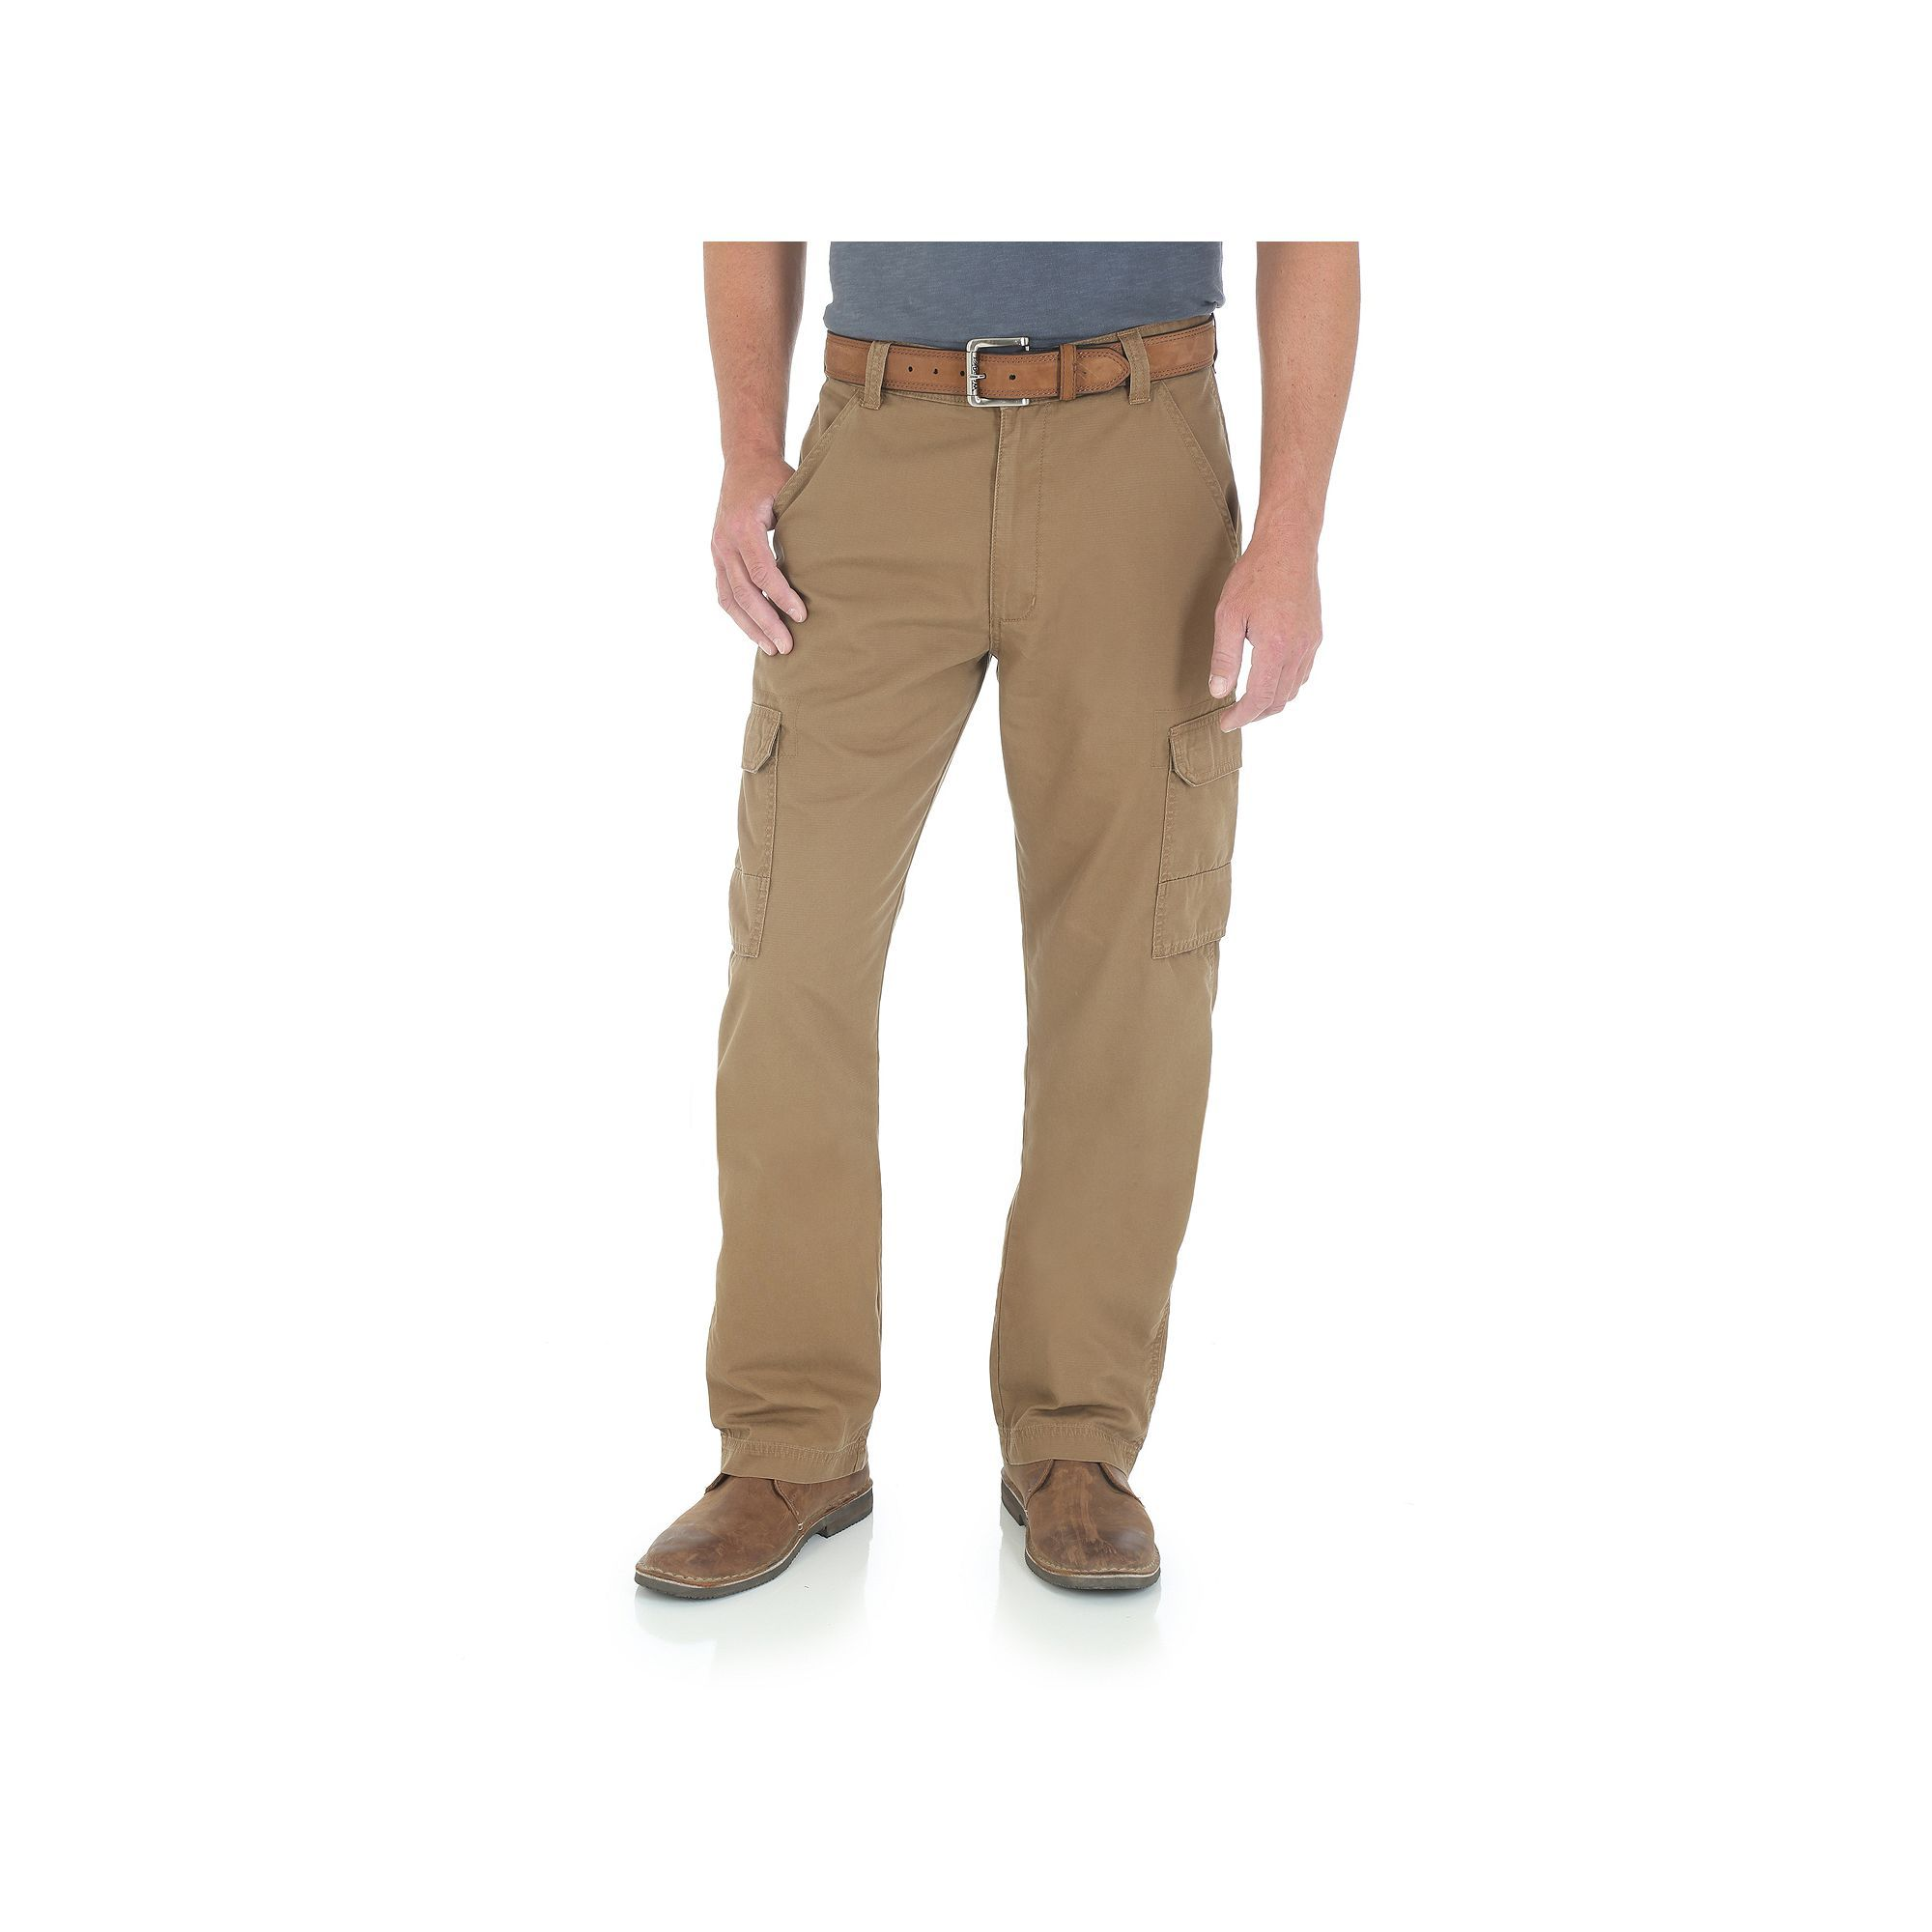 820415bd8a Men's Wrangler Twill Ripstop Cargo Pants, Size: 36X32, Med Brown ...